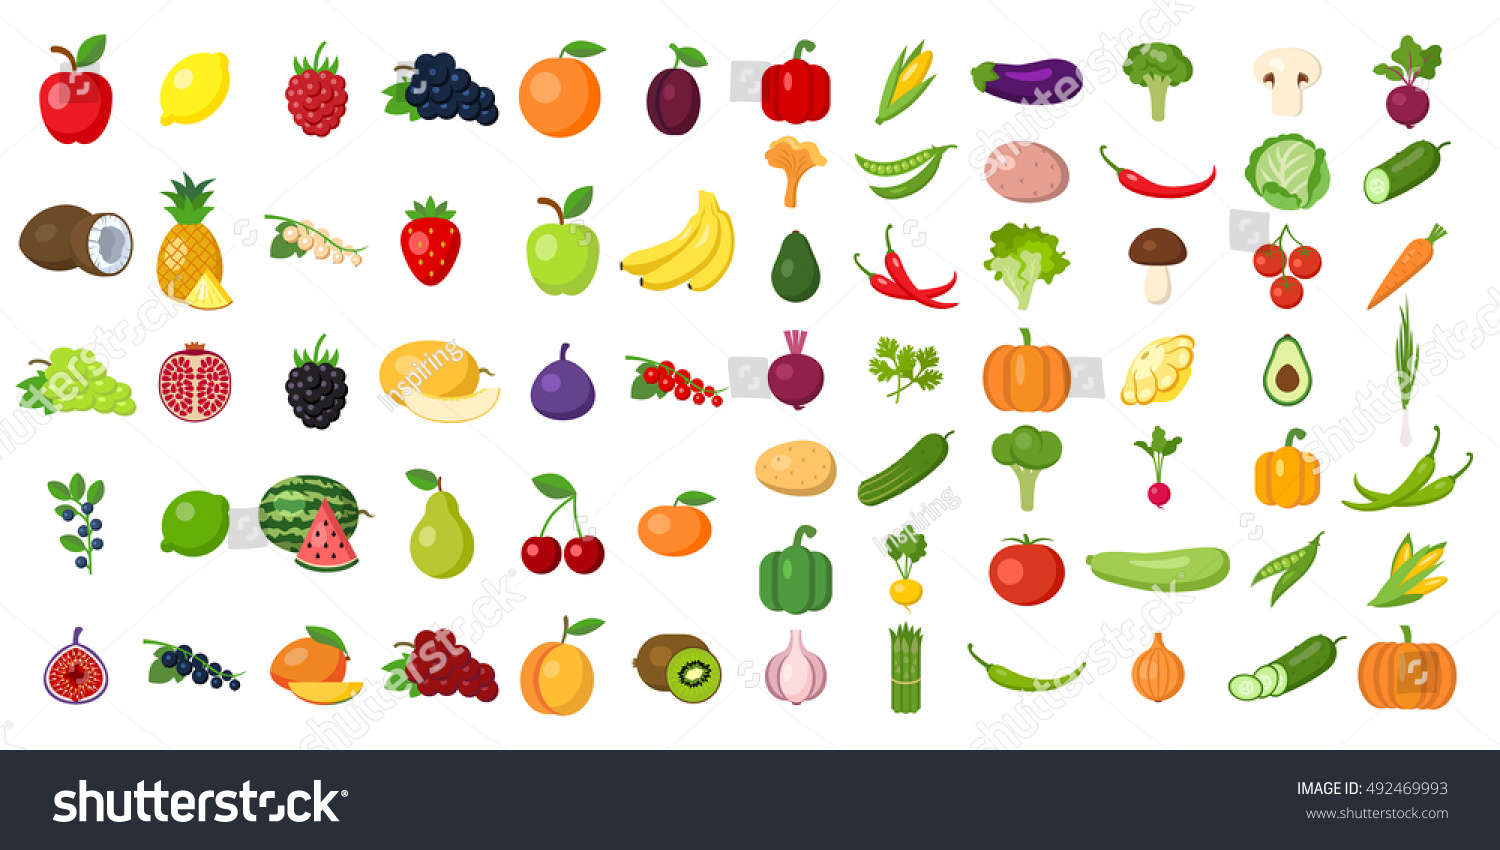 set fruits vegetables stock illustration 492469993 shutterstock